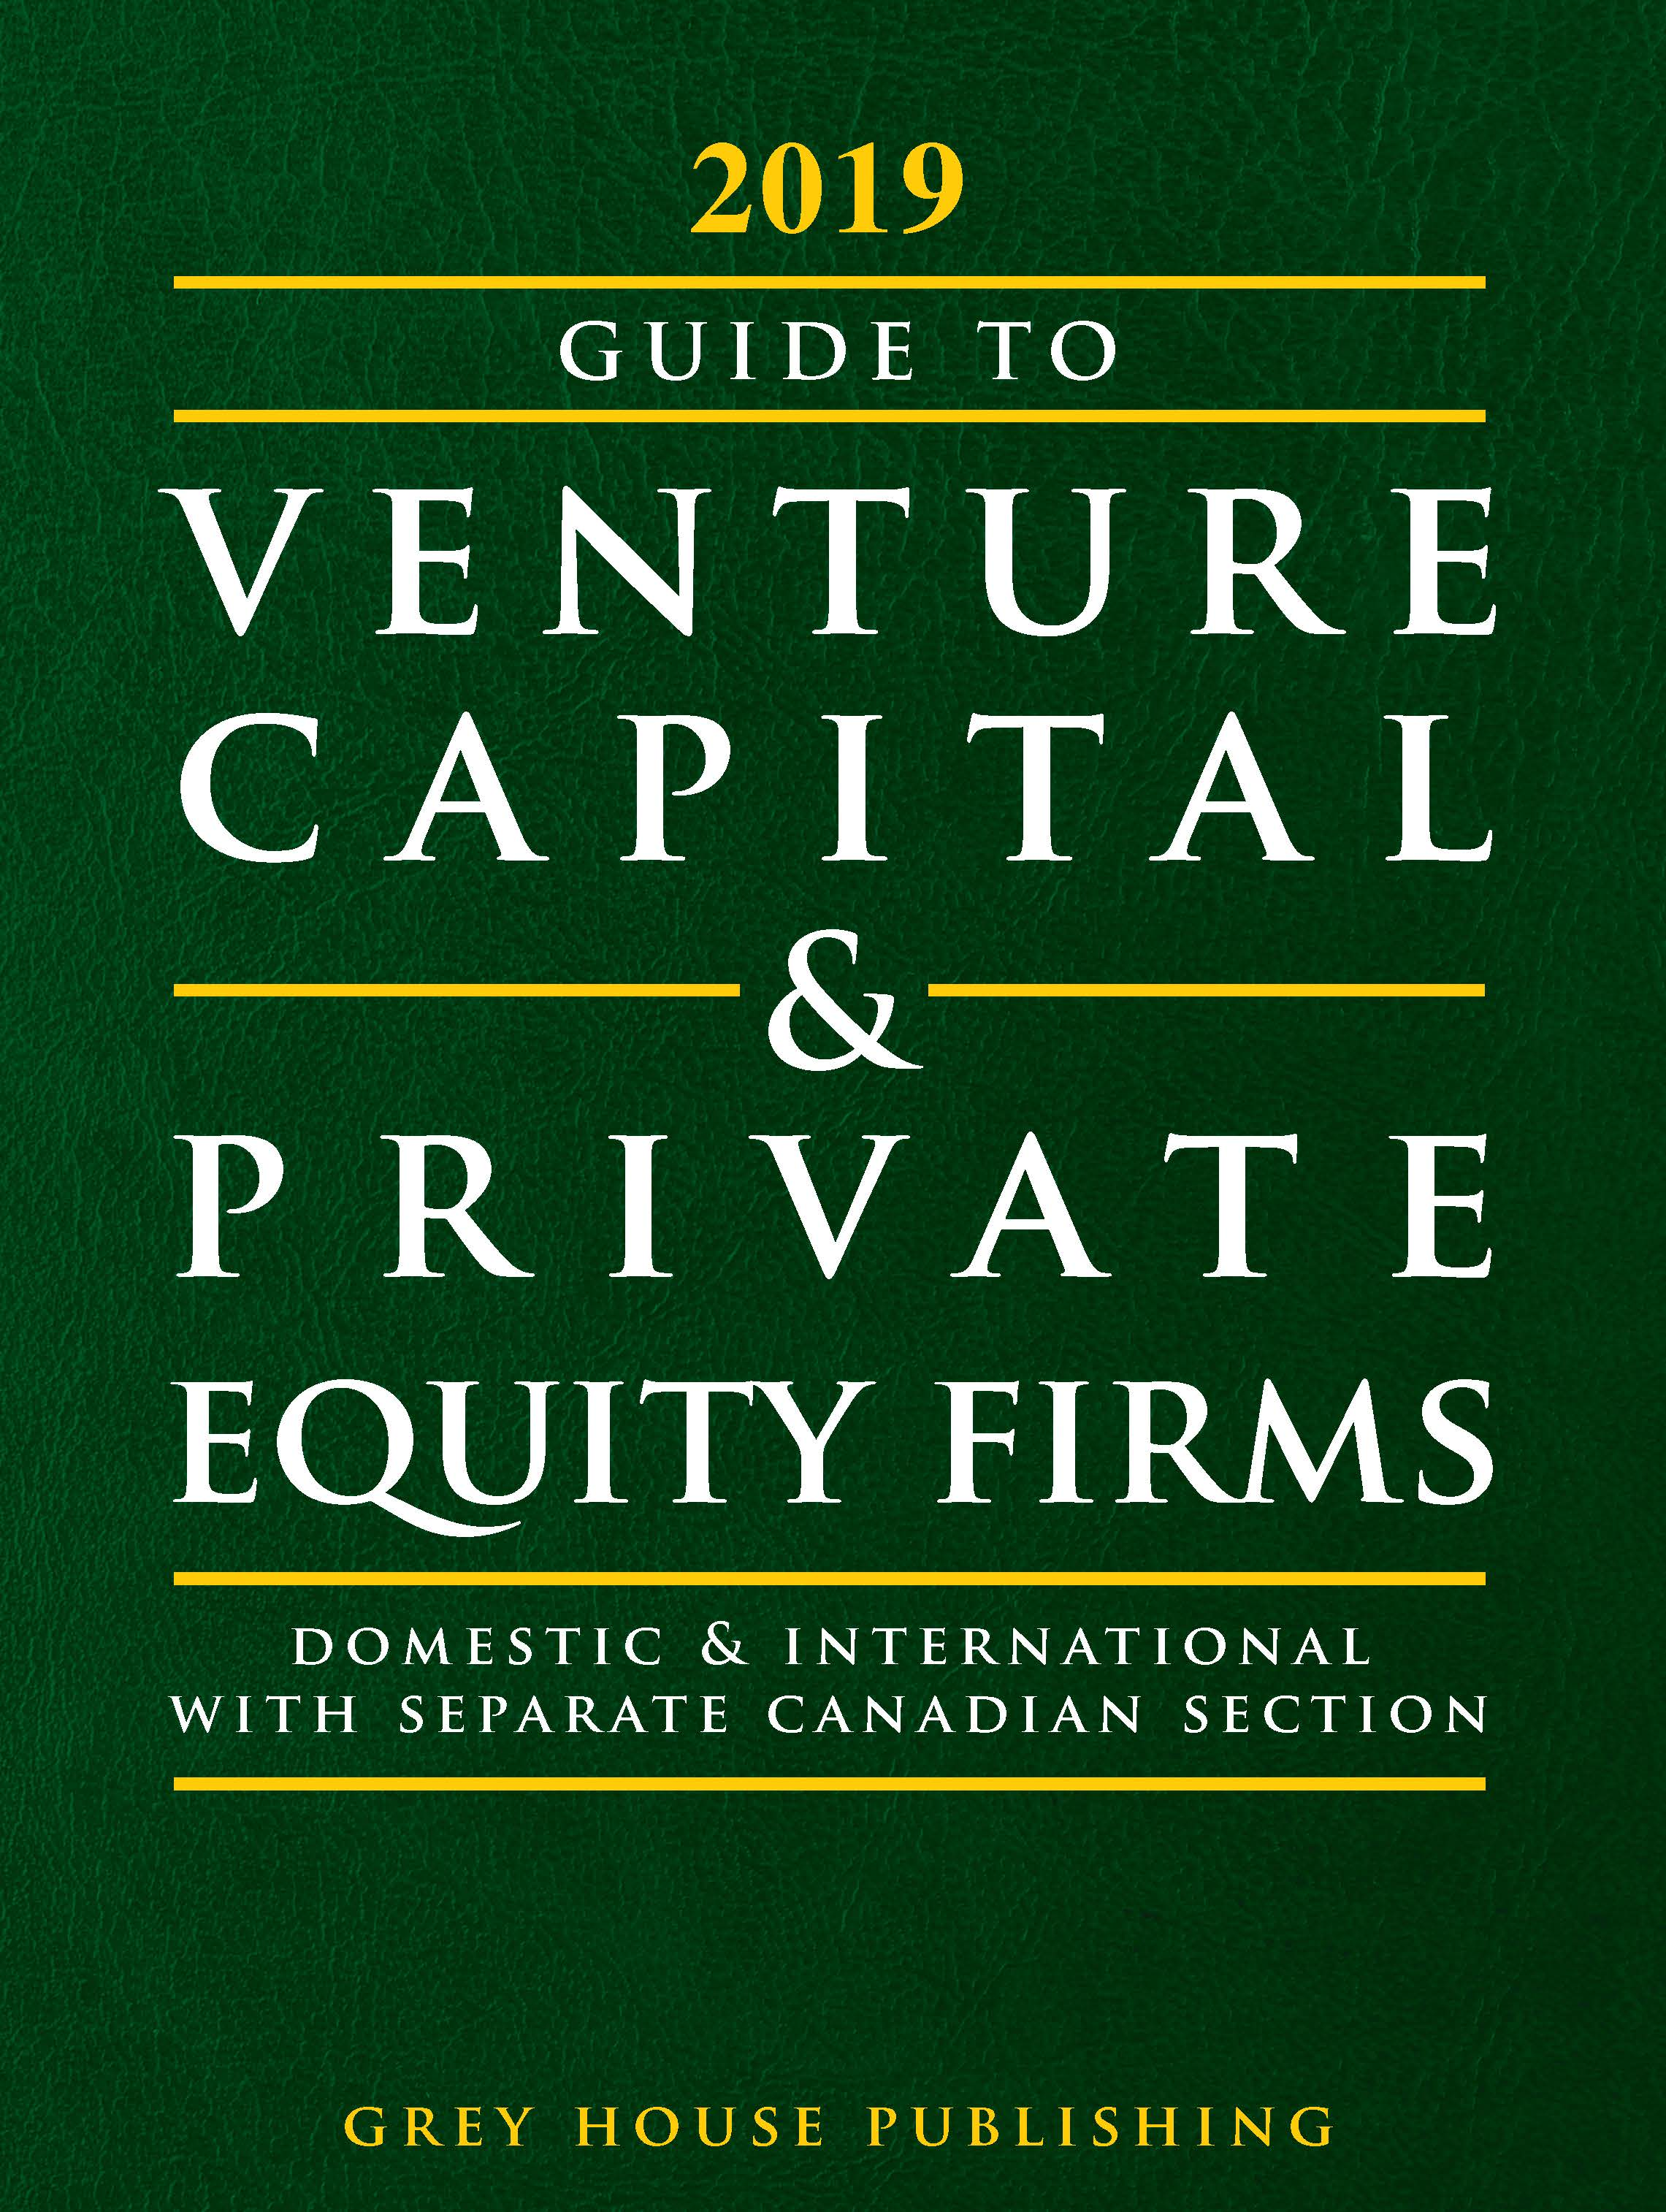 Grey House Publishing - Guide to Venture Capital & Private Equity Firms